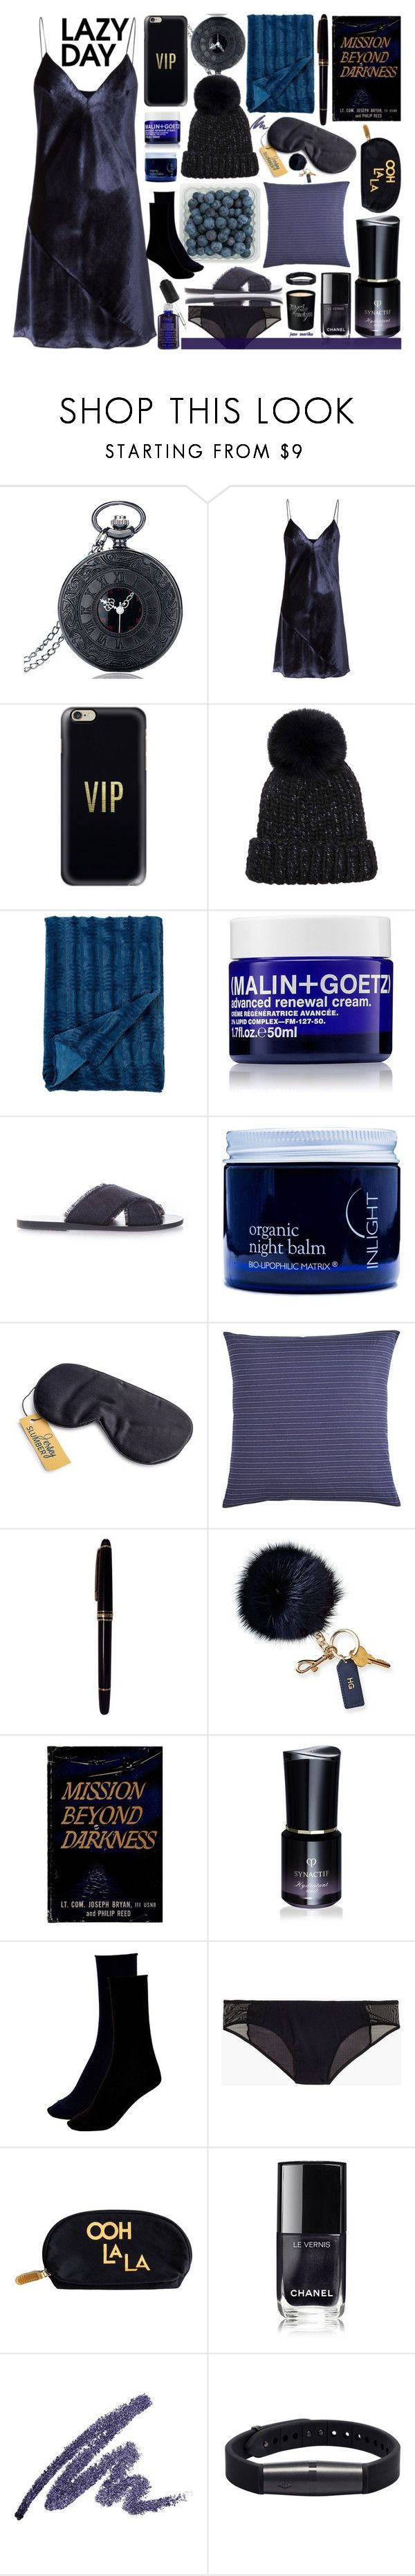 """#30 Sleep In - Lazy Day: 27/11/17"" by marika-jane ❤ liked on Polyvore featuring Fleur du Mal, Casetify, Eugenia Kim, Cathay Home Fashions, (MALIN+GOETZ), Ancient Greek Sandals, Inlight Skincare, Pier 1 Imports, Mont Blanc and Mark & Graham"